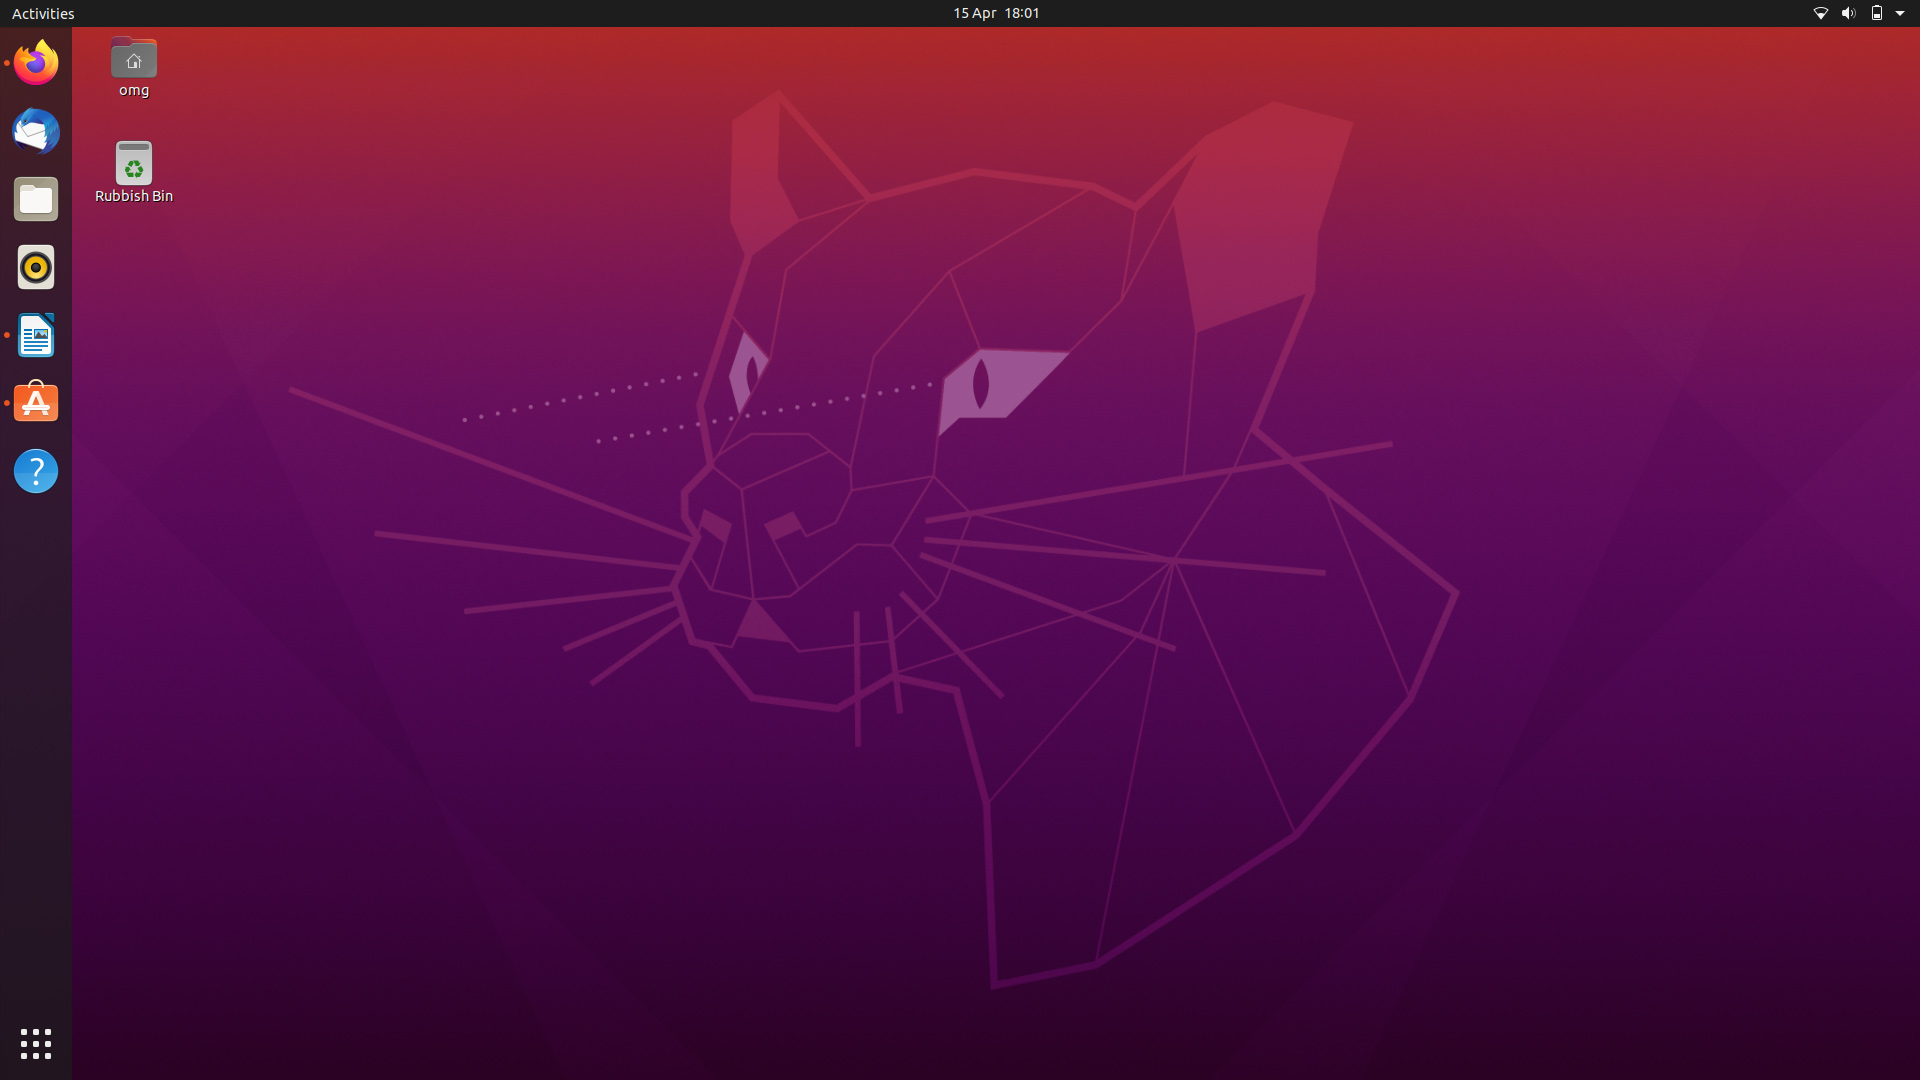 http://31.220.61.170/wp-content/uploads/2020/05/1588274411_236_Discover-Ubuntu-20.04-LTS-in-20-Screenshots.jpg